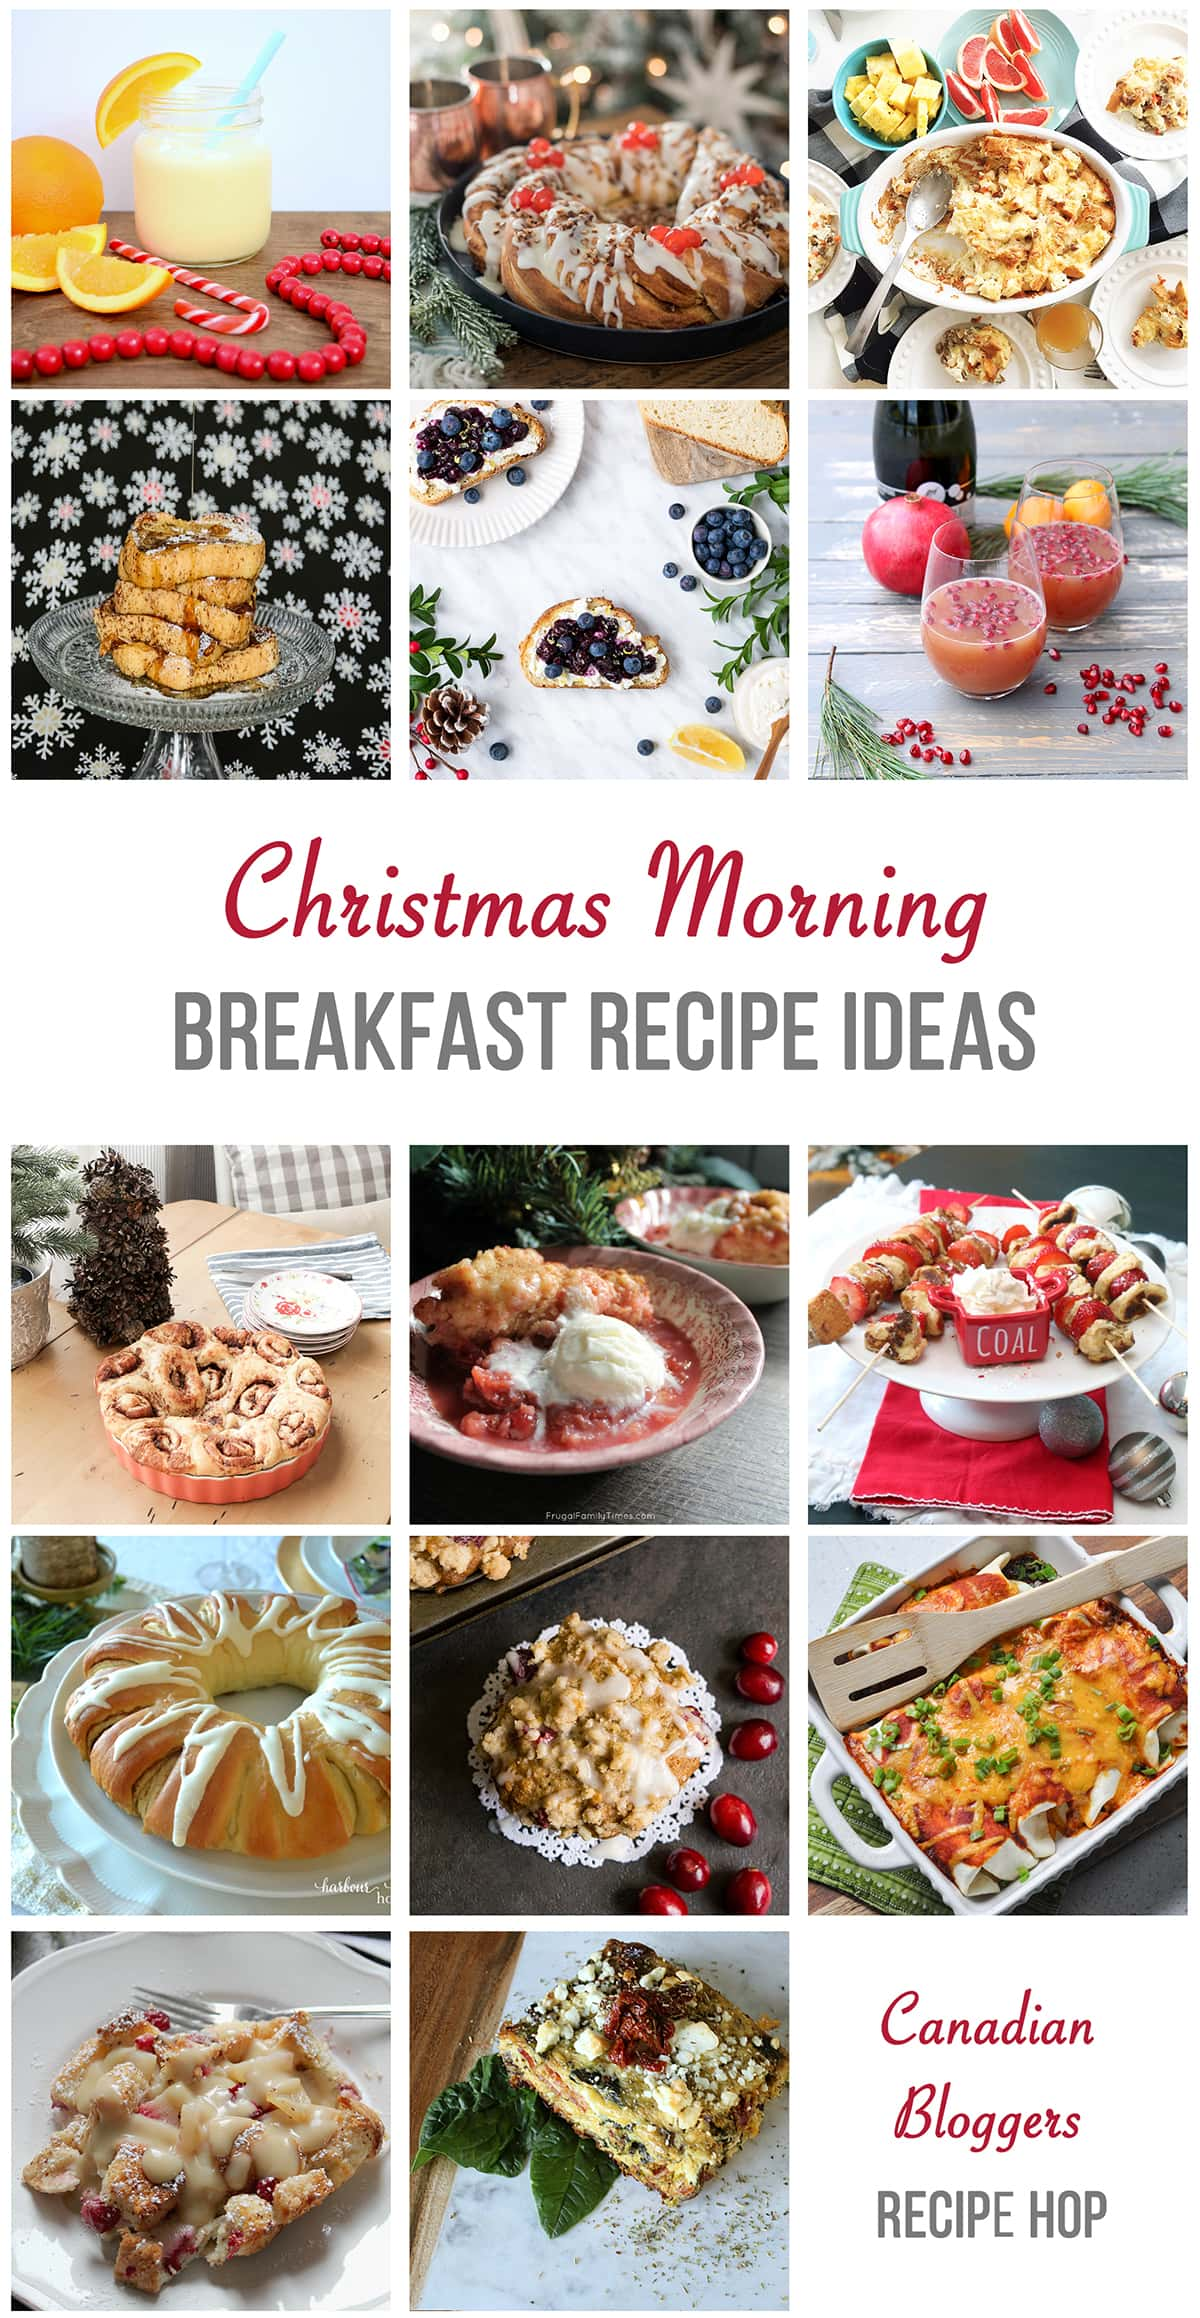 Christmas Morning Breakfast Recipe Ideas